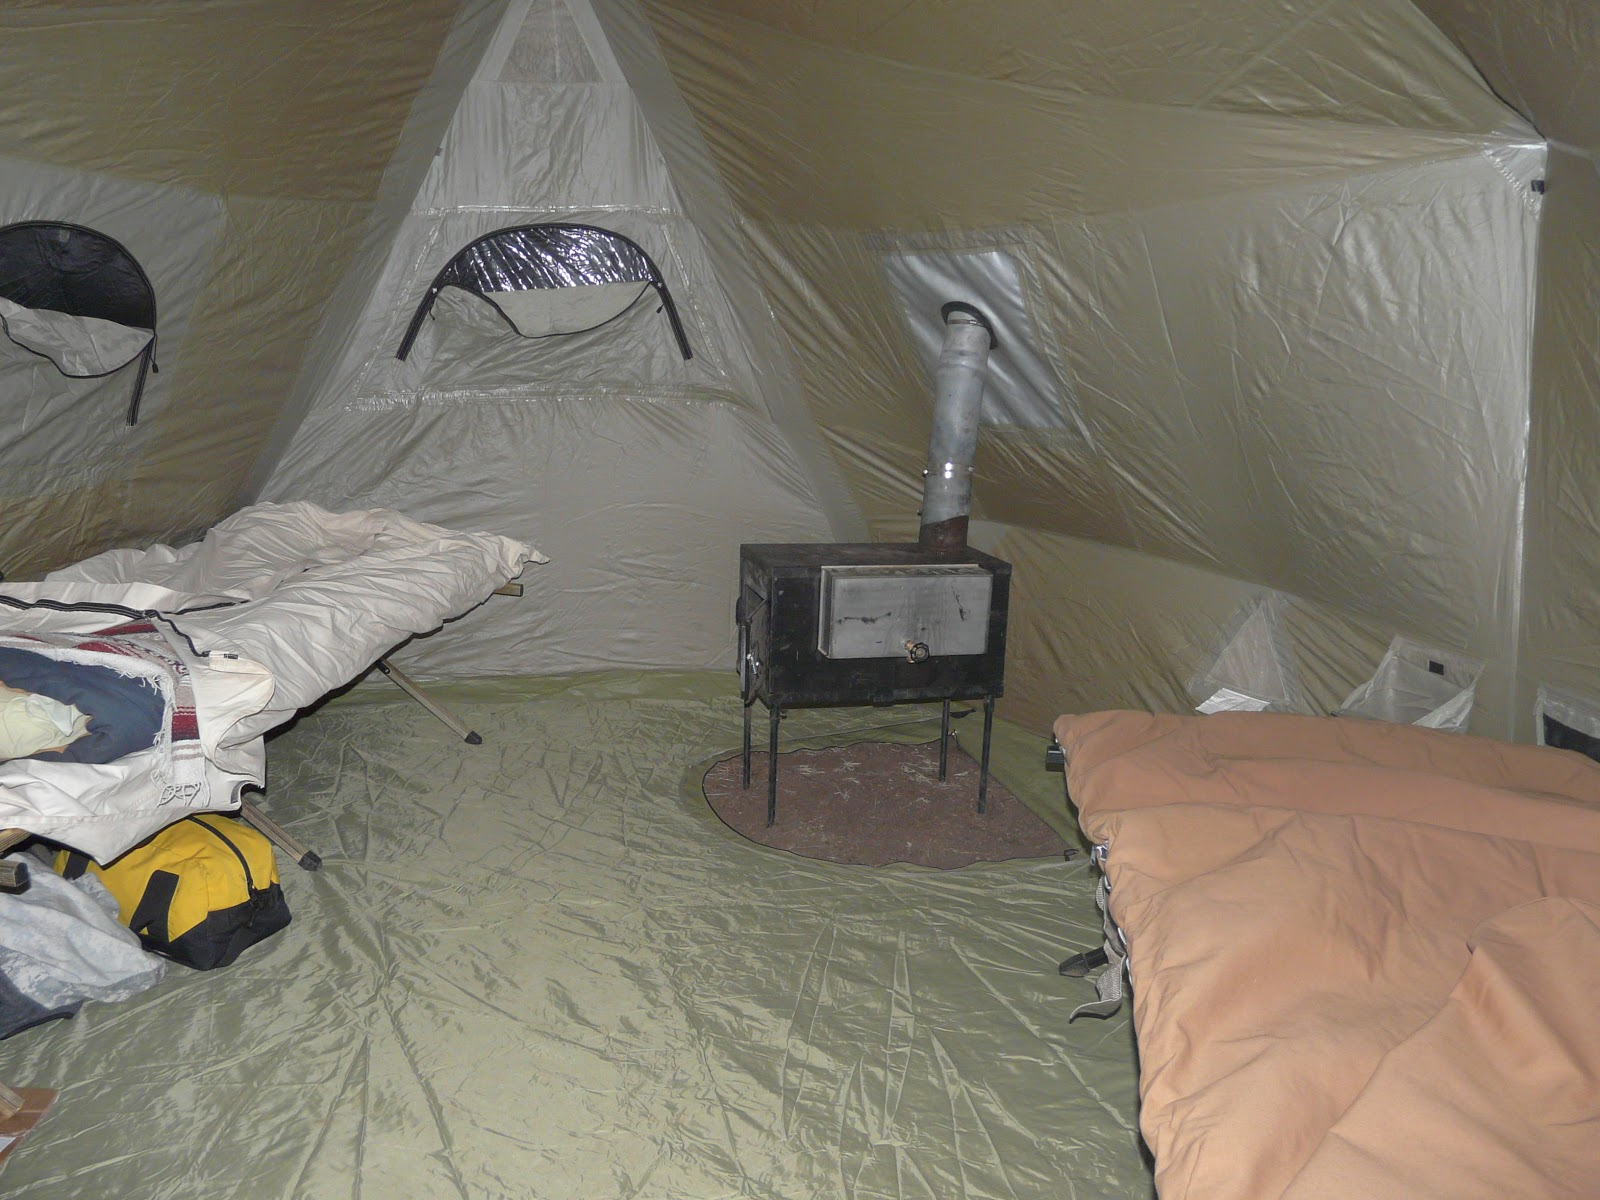 I used the vestibule as a mud room during my 2011 Sept elk hunt to keep boots and gear protected from the weather but out of the main tent body. & Cabelau0027s Bighorn II Tent Review